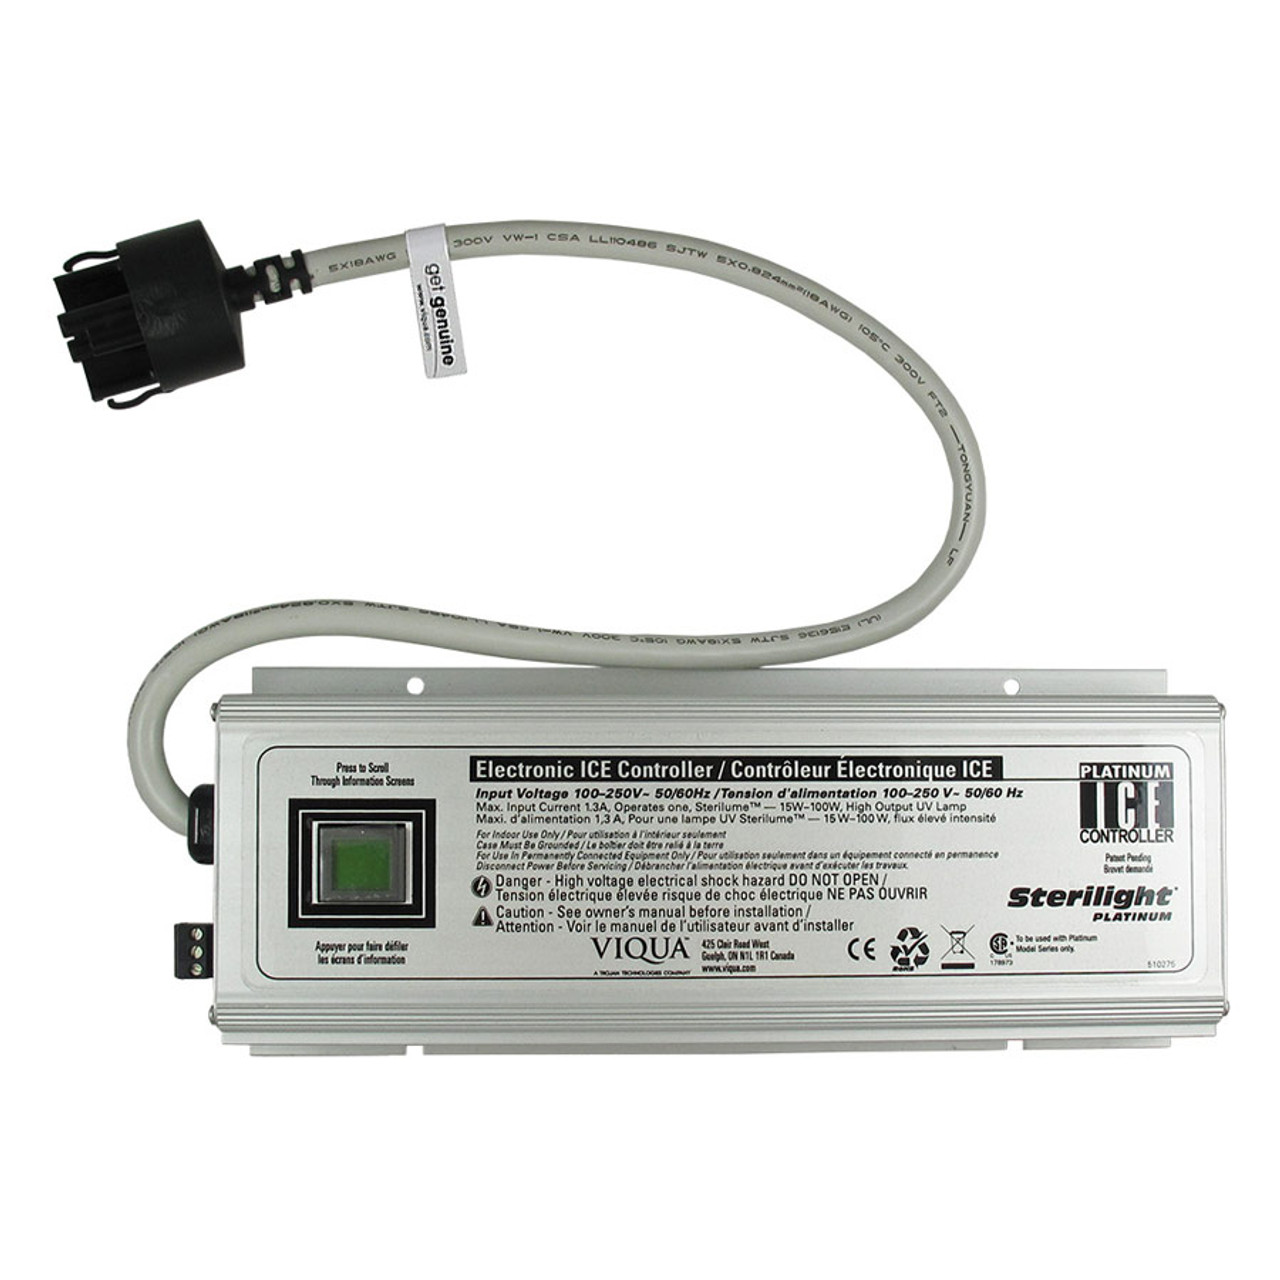 The Sterilight SPC-ICE-HO Controller/Ballast for Platinum Models 100-240V